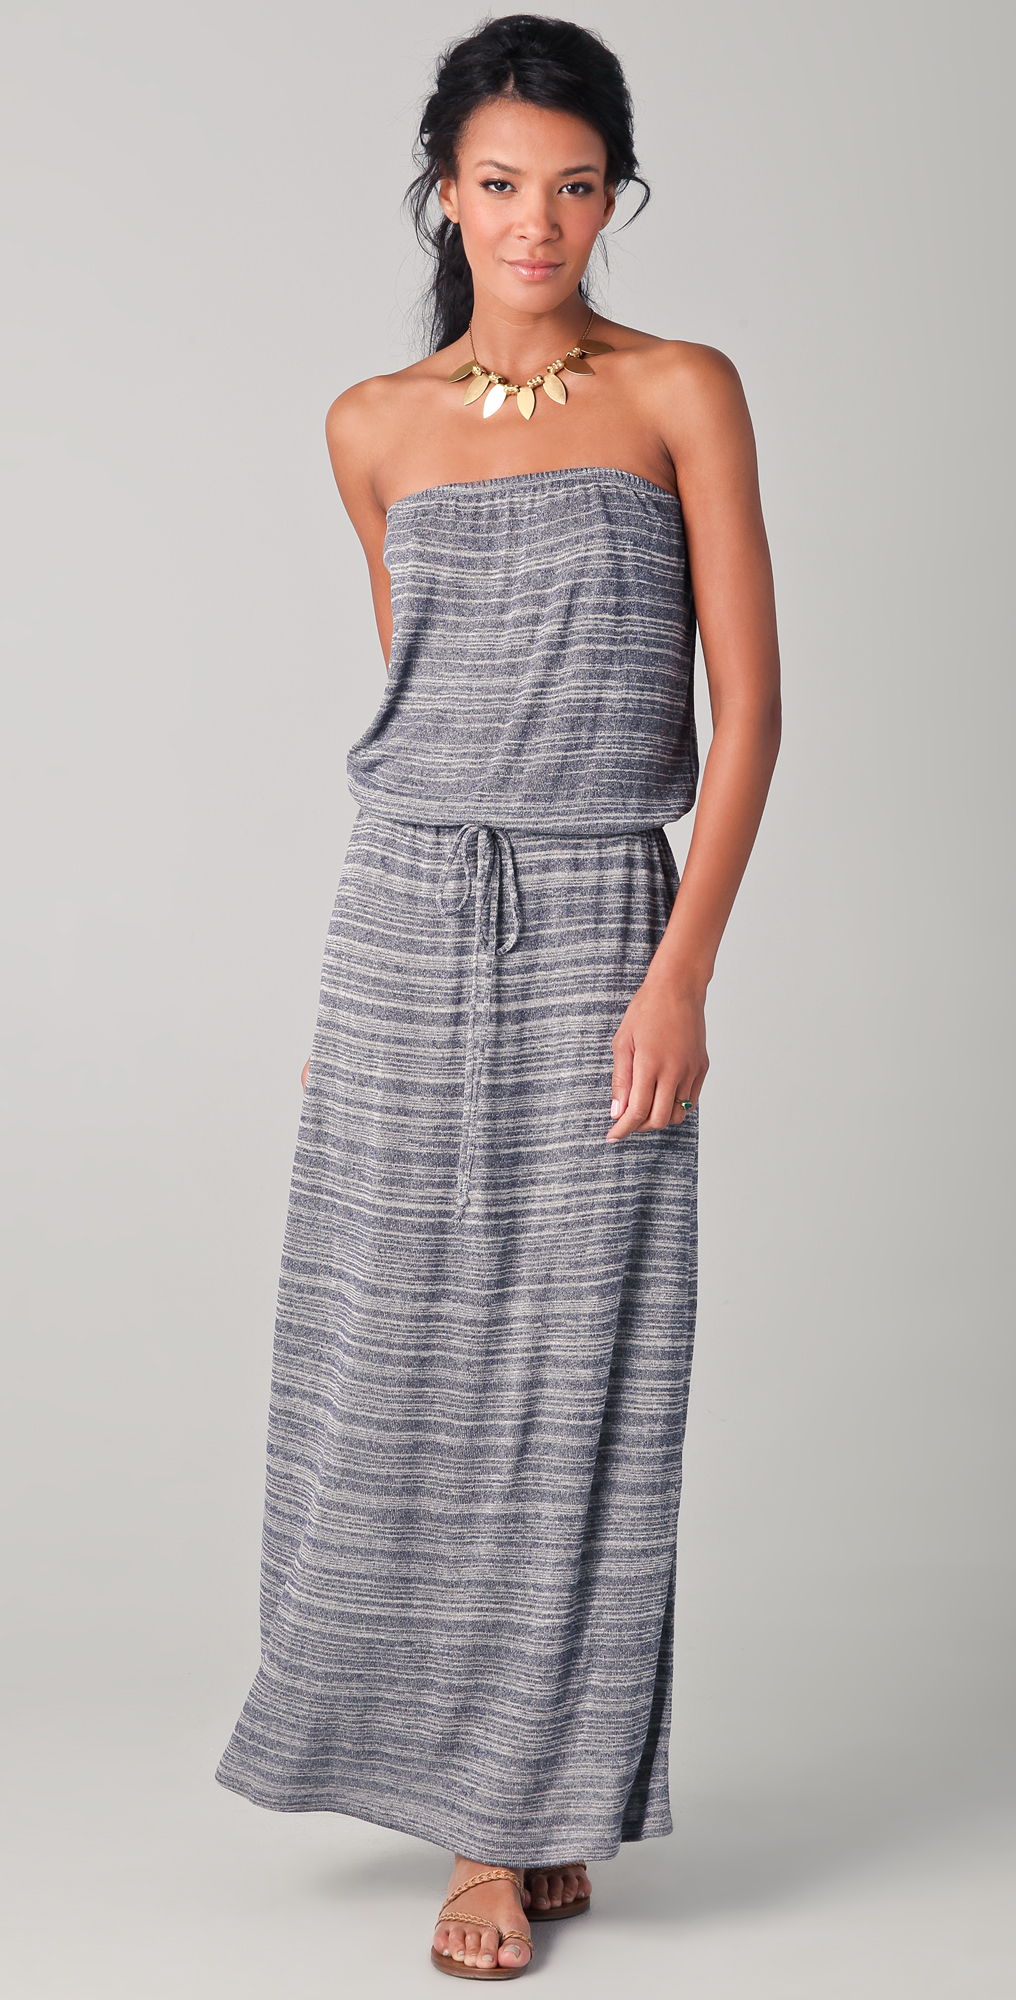 Strapless Maxi Dresses for Summer Looking